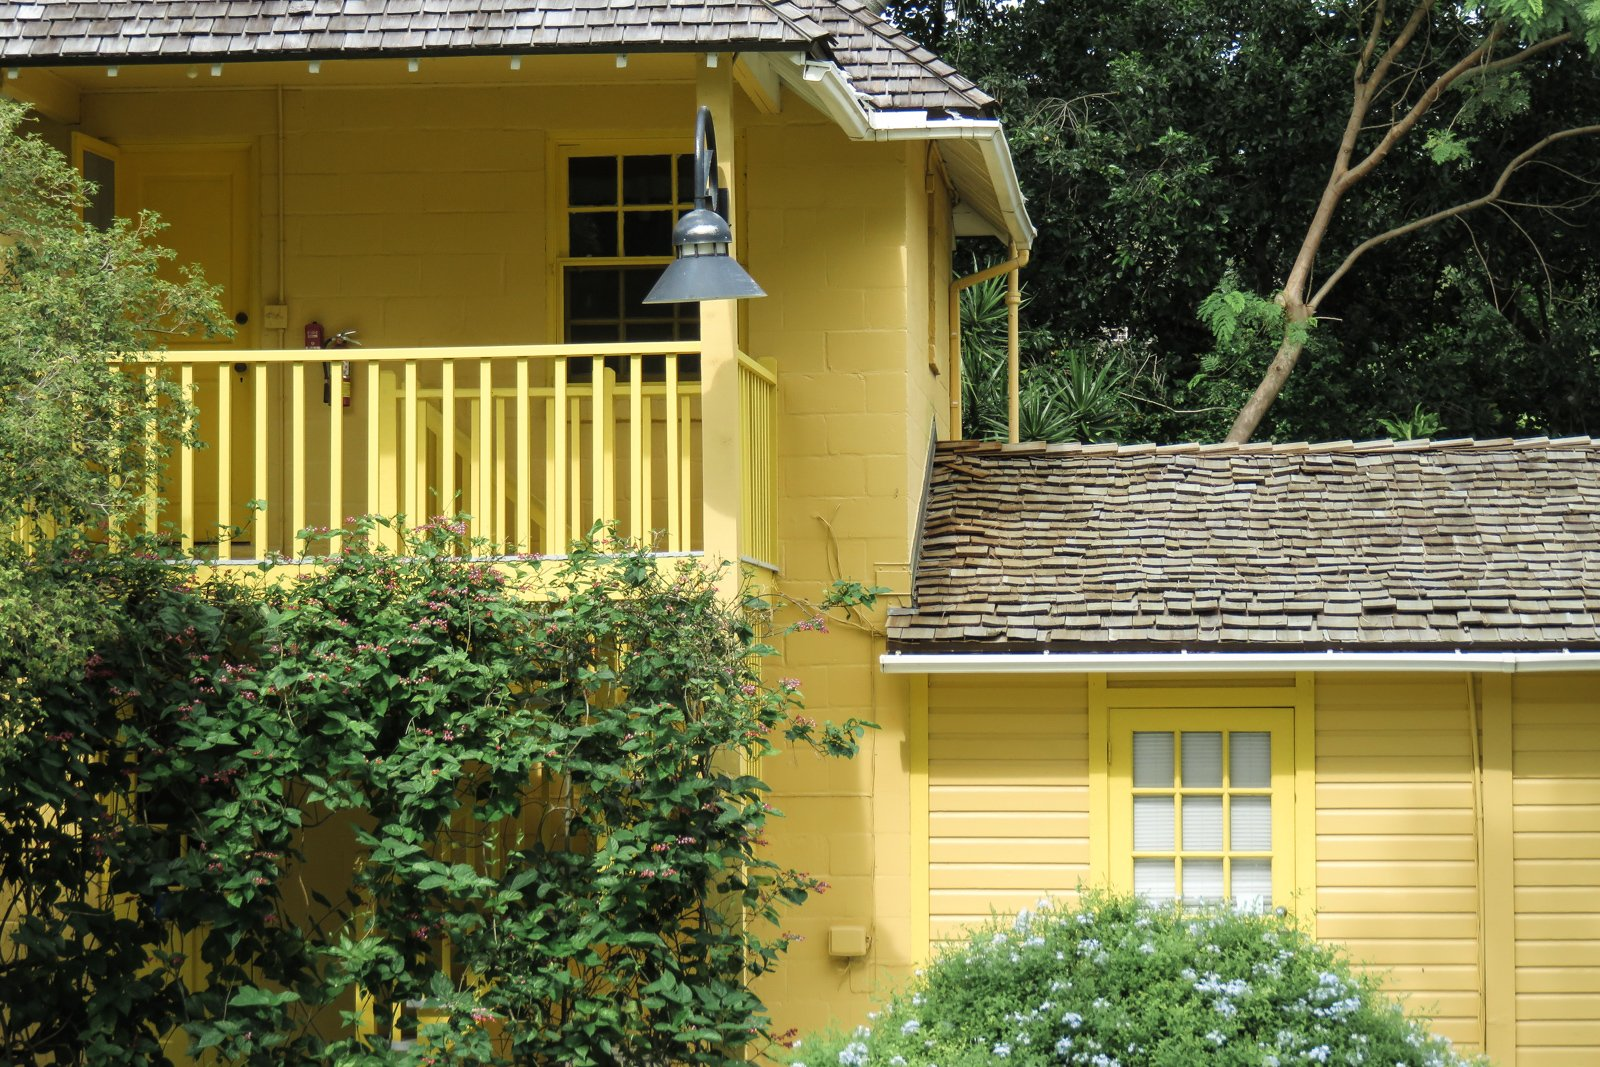 Fort Lauderdale attractions: Bonnet Hosue, one of the top historic things to do in Fort Lauderdale